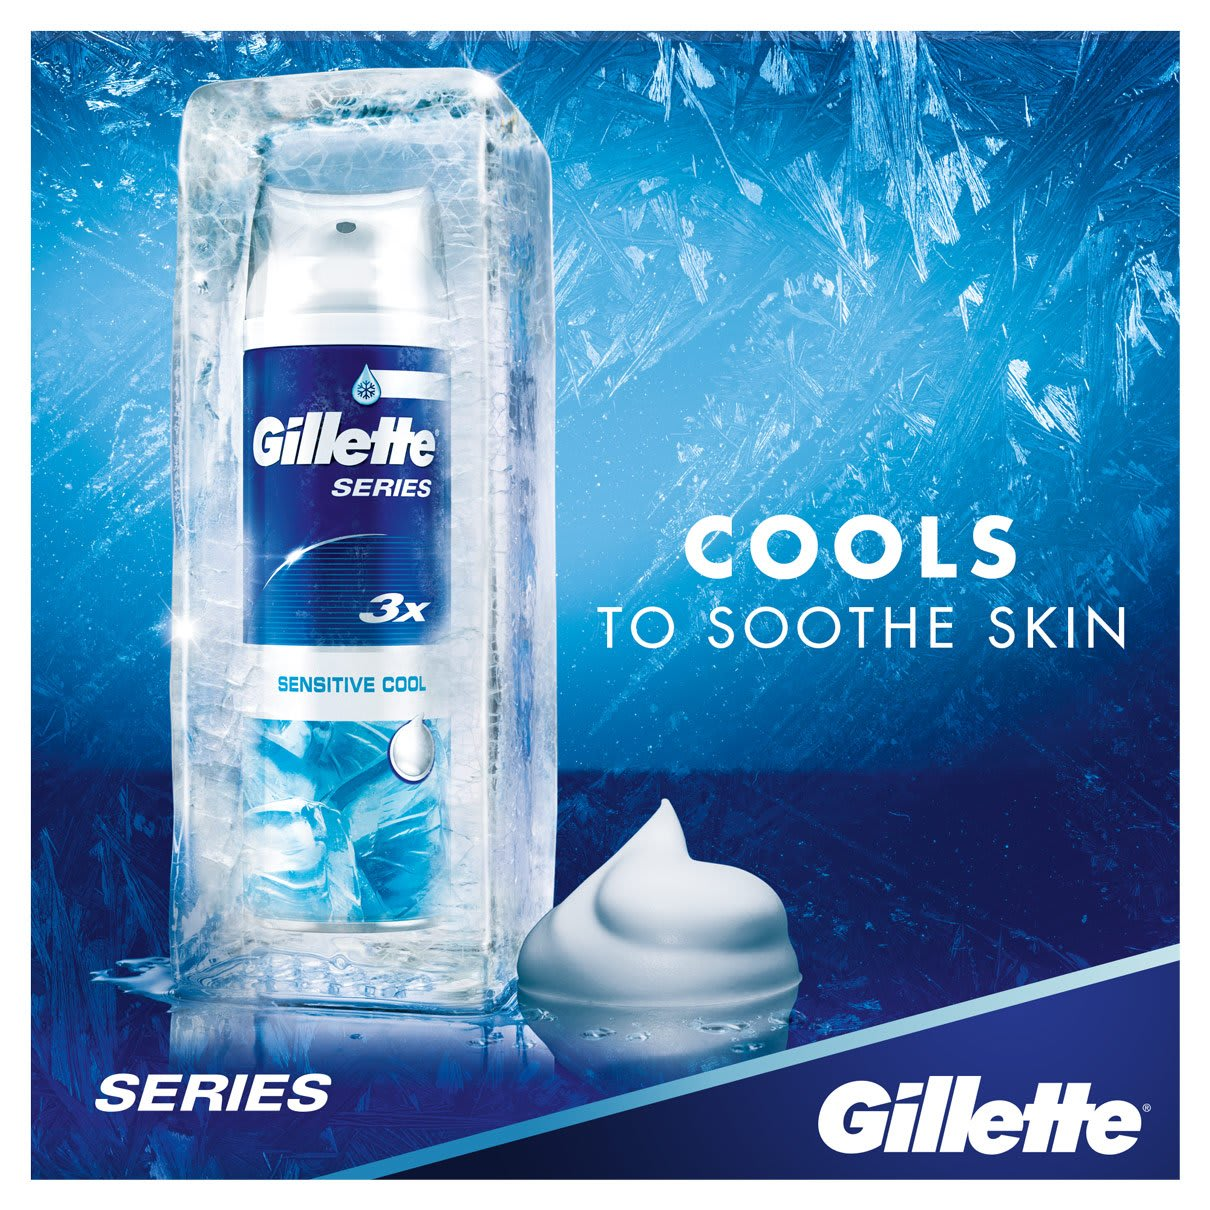 Cools to Soothe Skin | Gillette Series Sensitive Cool Shave Foam